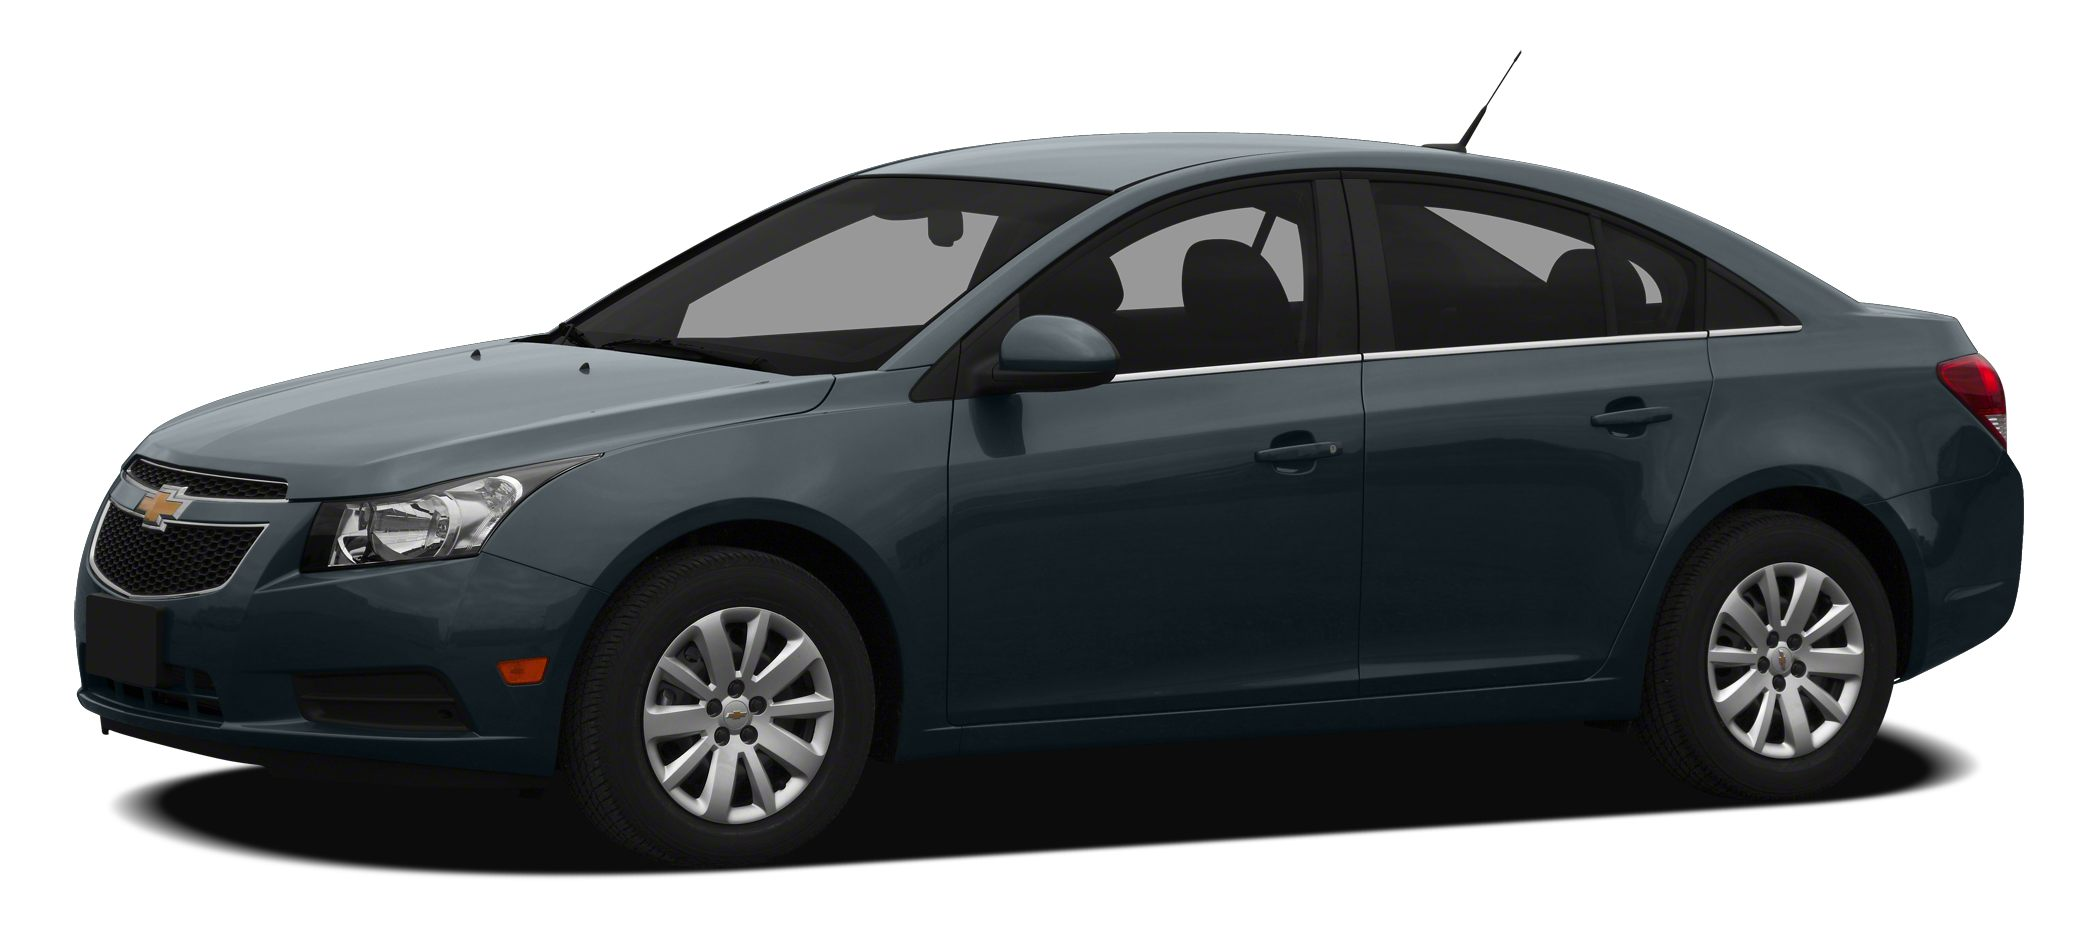 2012 Chevrolet Cruze LS ONLY 59857 Miles FUEL EFFICIENT 36 MPG Hwy25 MPG City LS trim CD Play